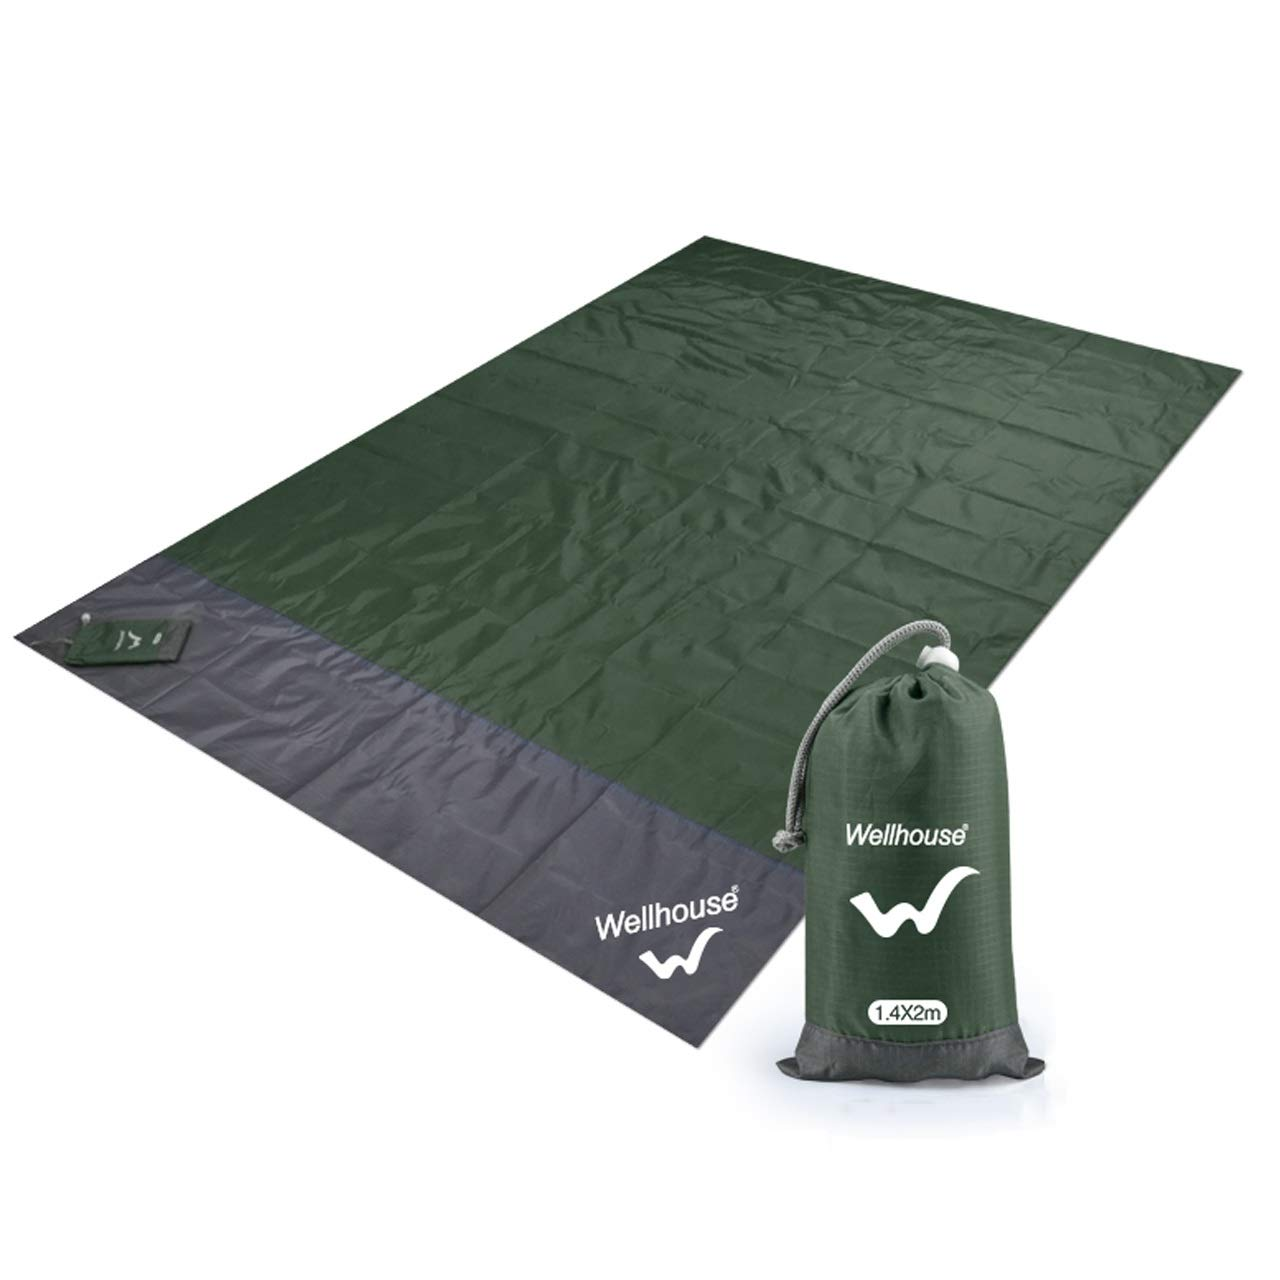 ASIERY Thicken Portable Moisture-Proof Floor mat Picnic mat Waterproof and Heat Insulation (Color : G, Size : 140200CM) by ASIERY